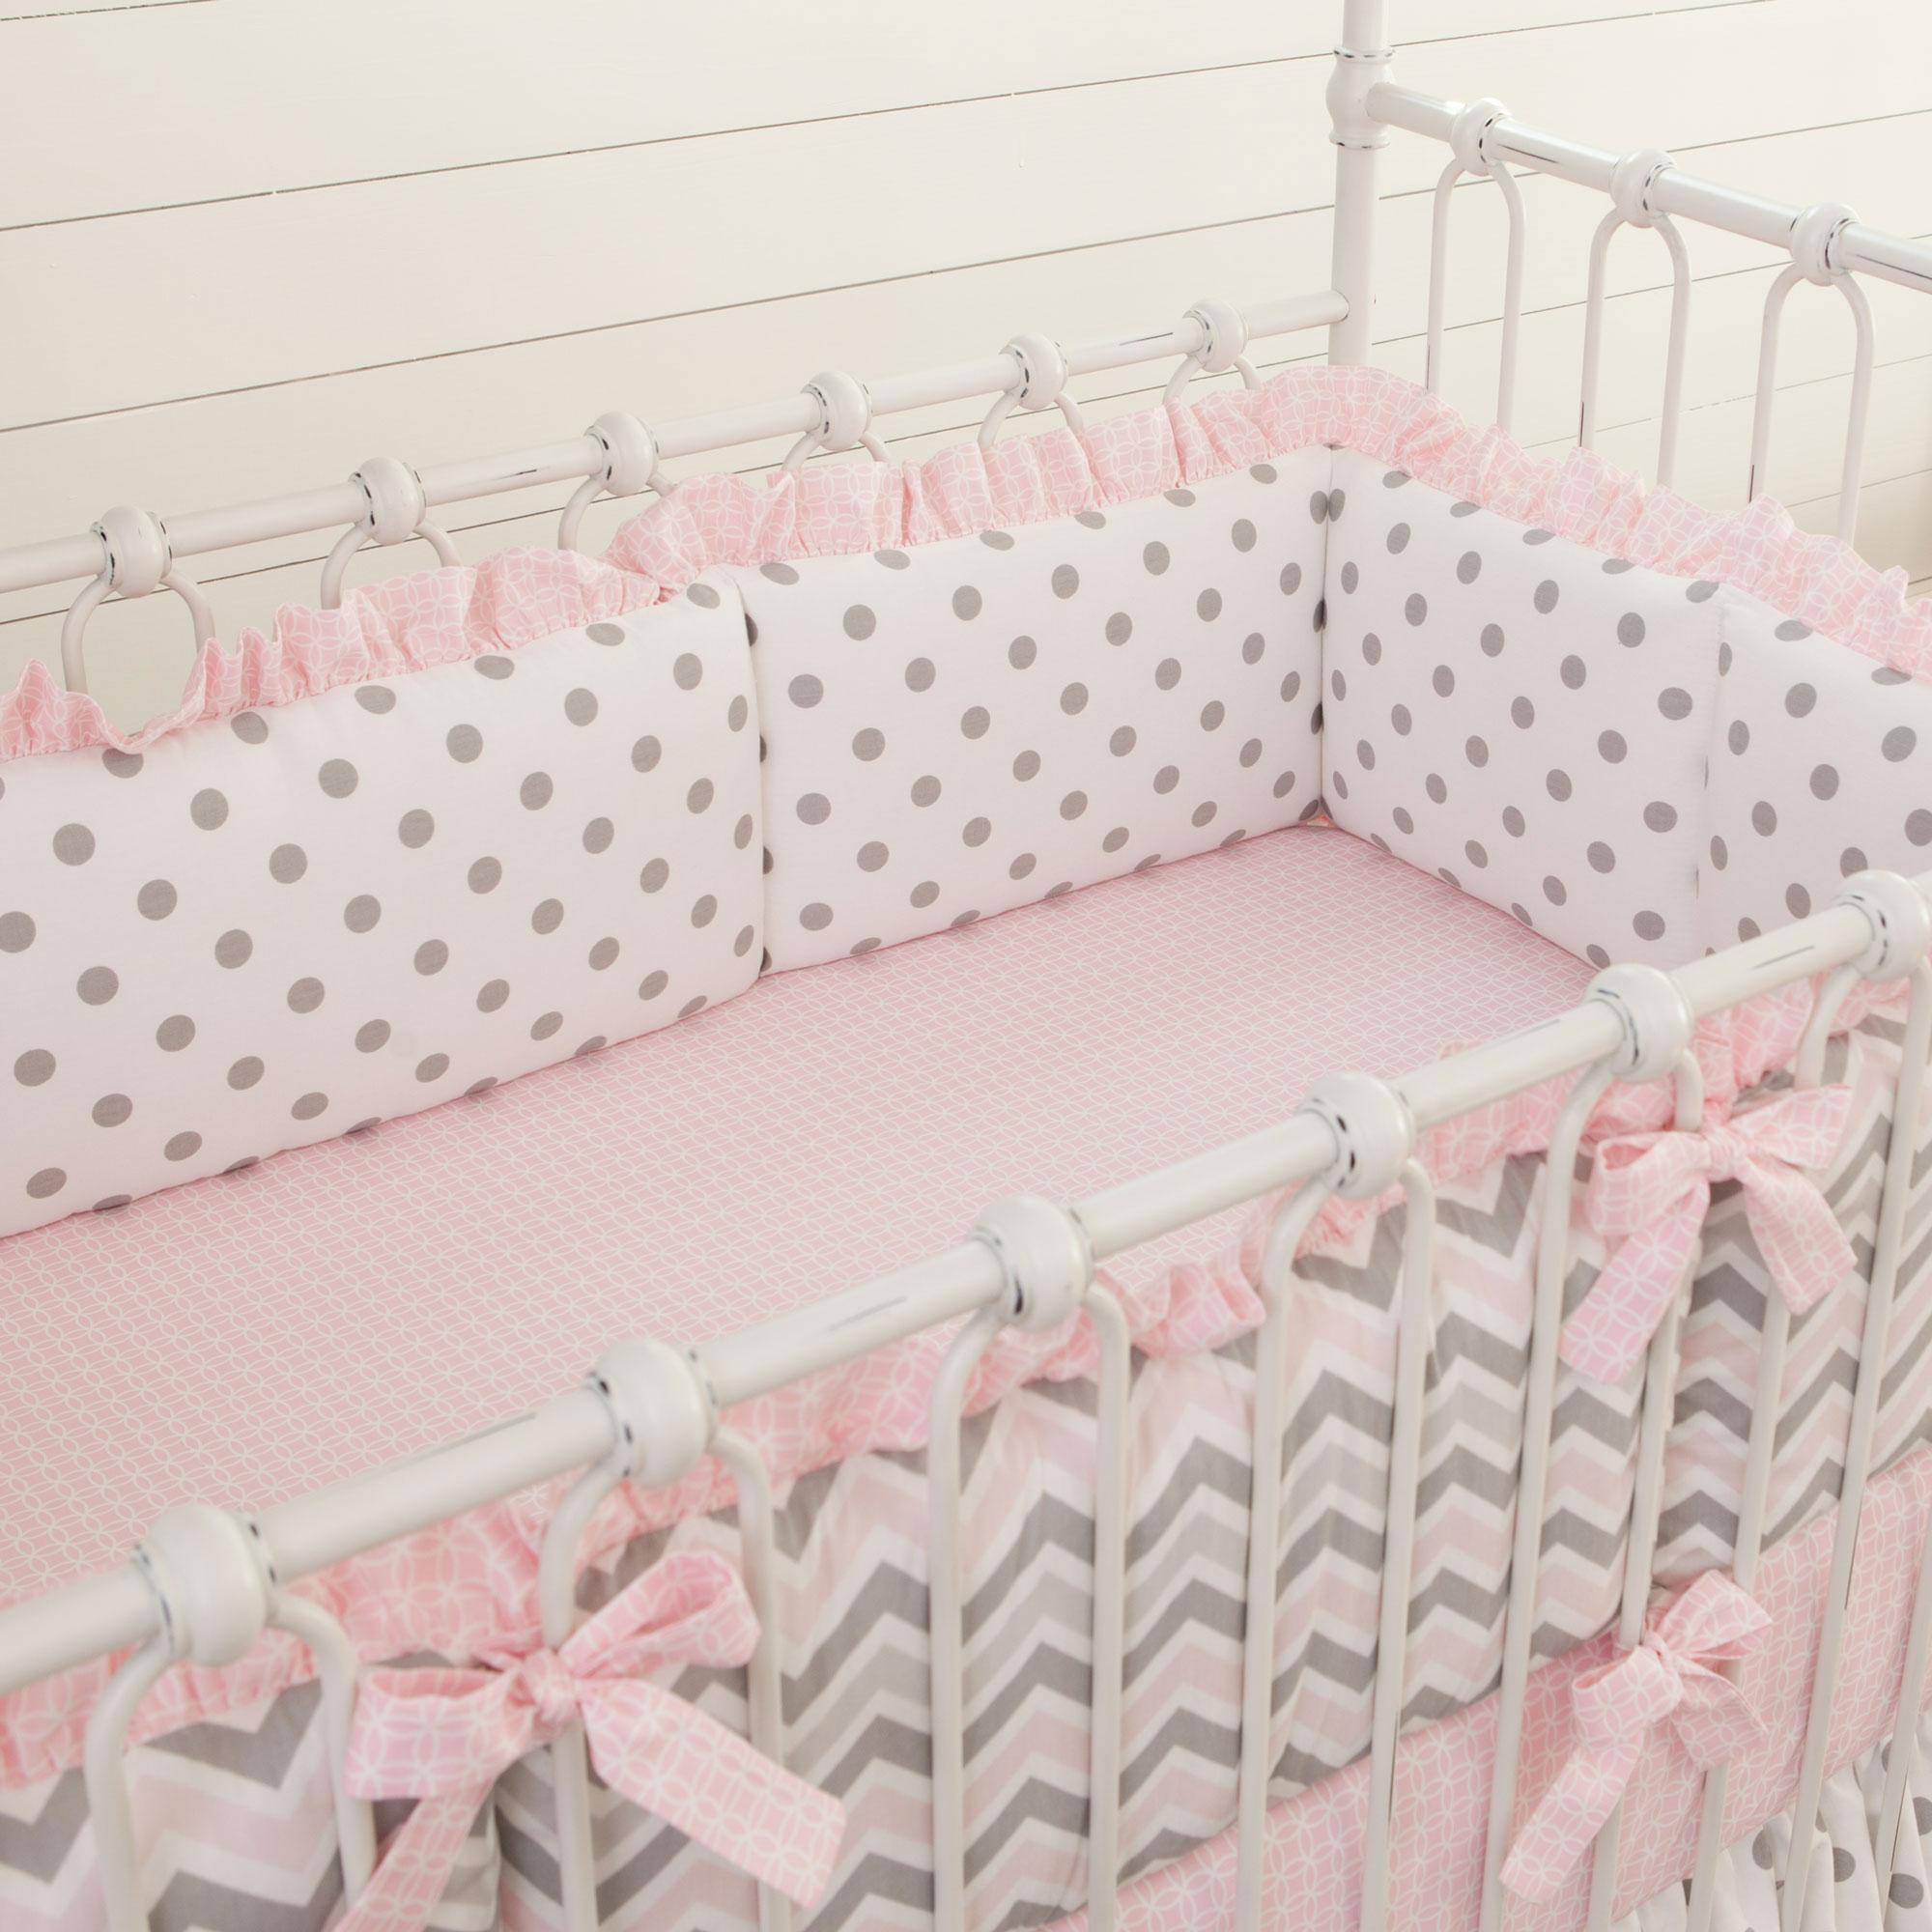 Charming Crib Bumper Pads for Wonderful and Cozy Crib Ideas: Mesh Crib Liner | Crib Bumper Pads | Coral And Navy Crib Bedding